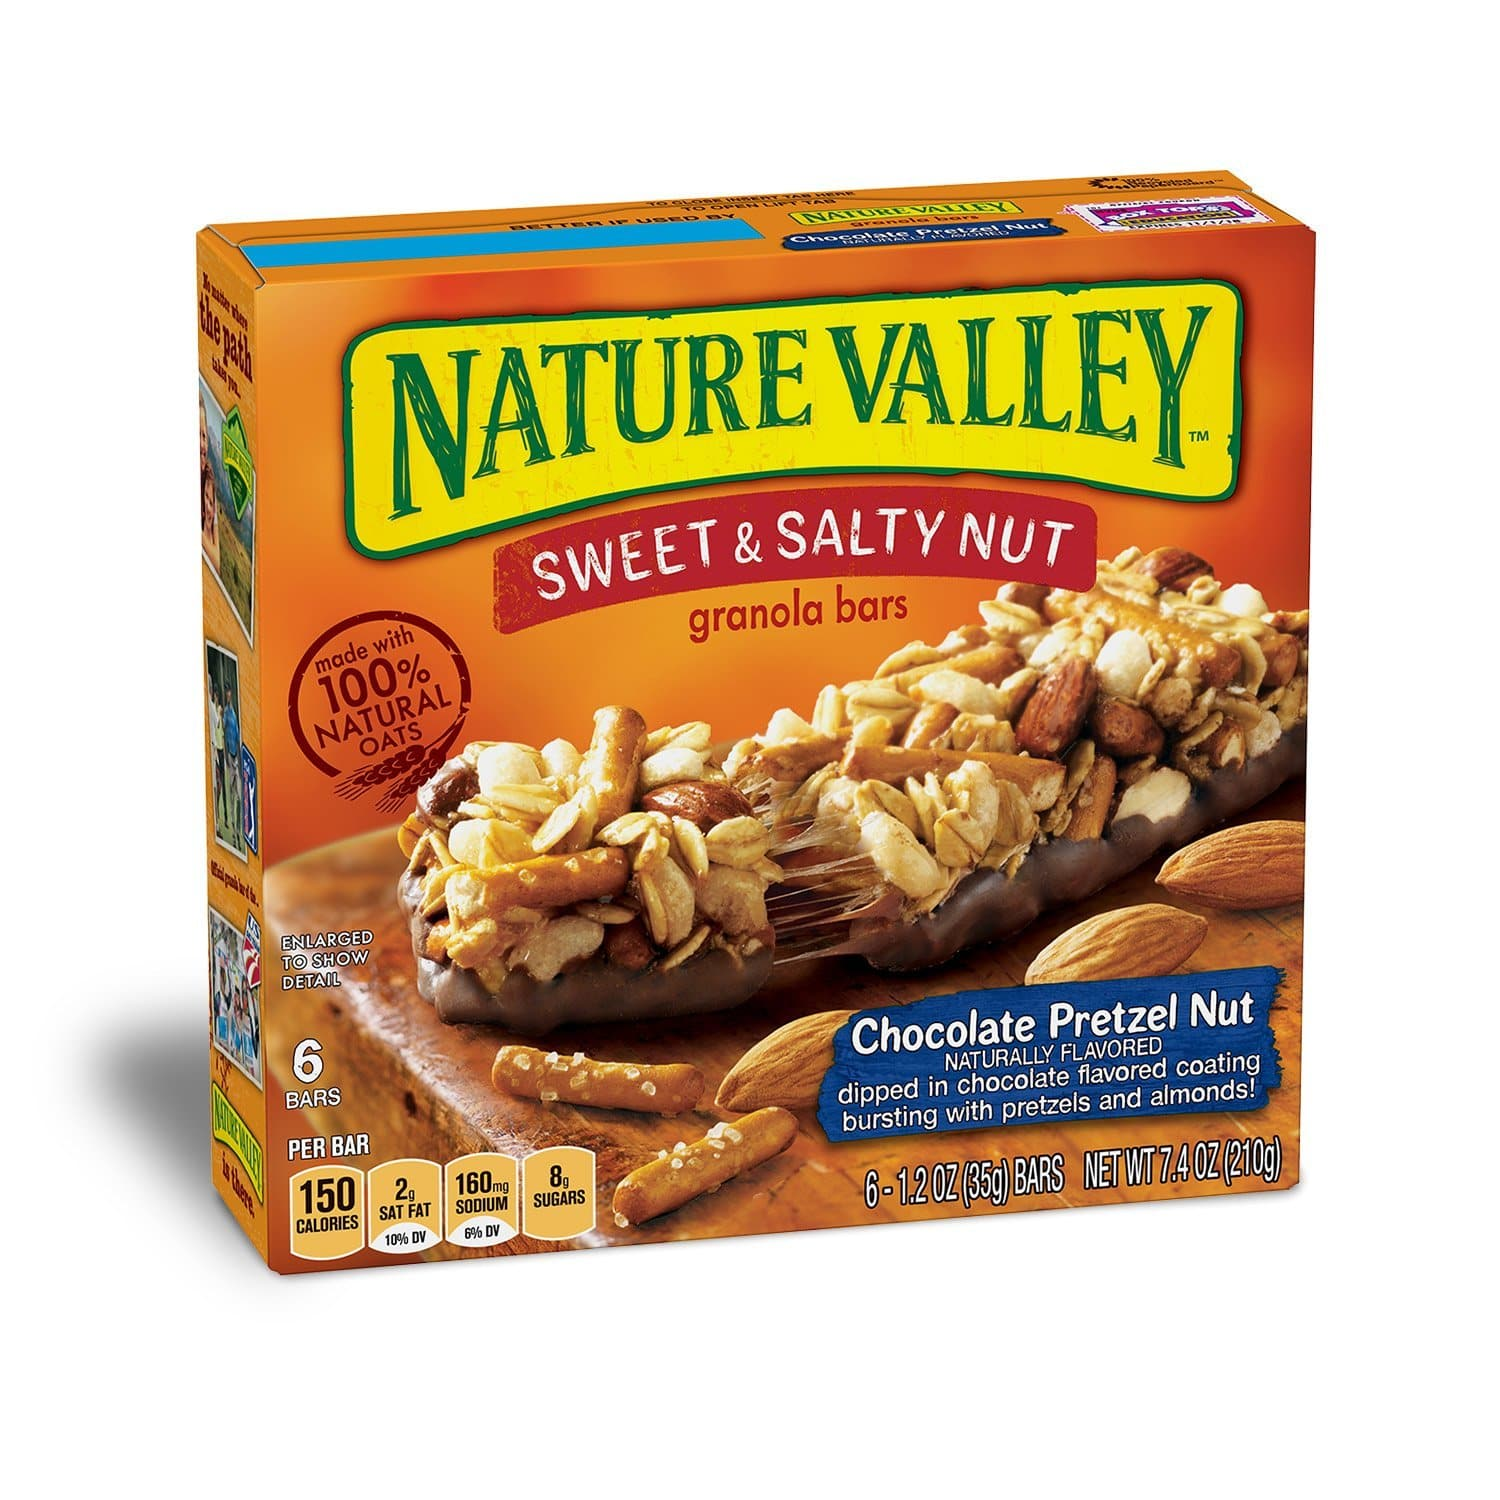 72 Count Nature Valley Granola Bars Sweet and Salty Nut, Chocolate Pretzel Nut:: $22.50 @ Amazon